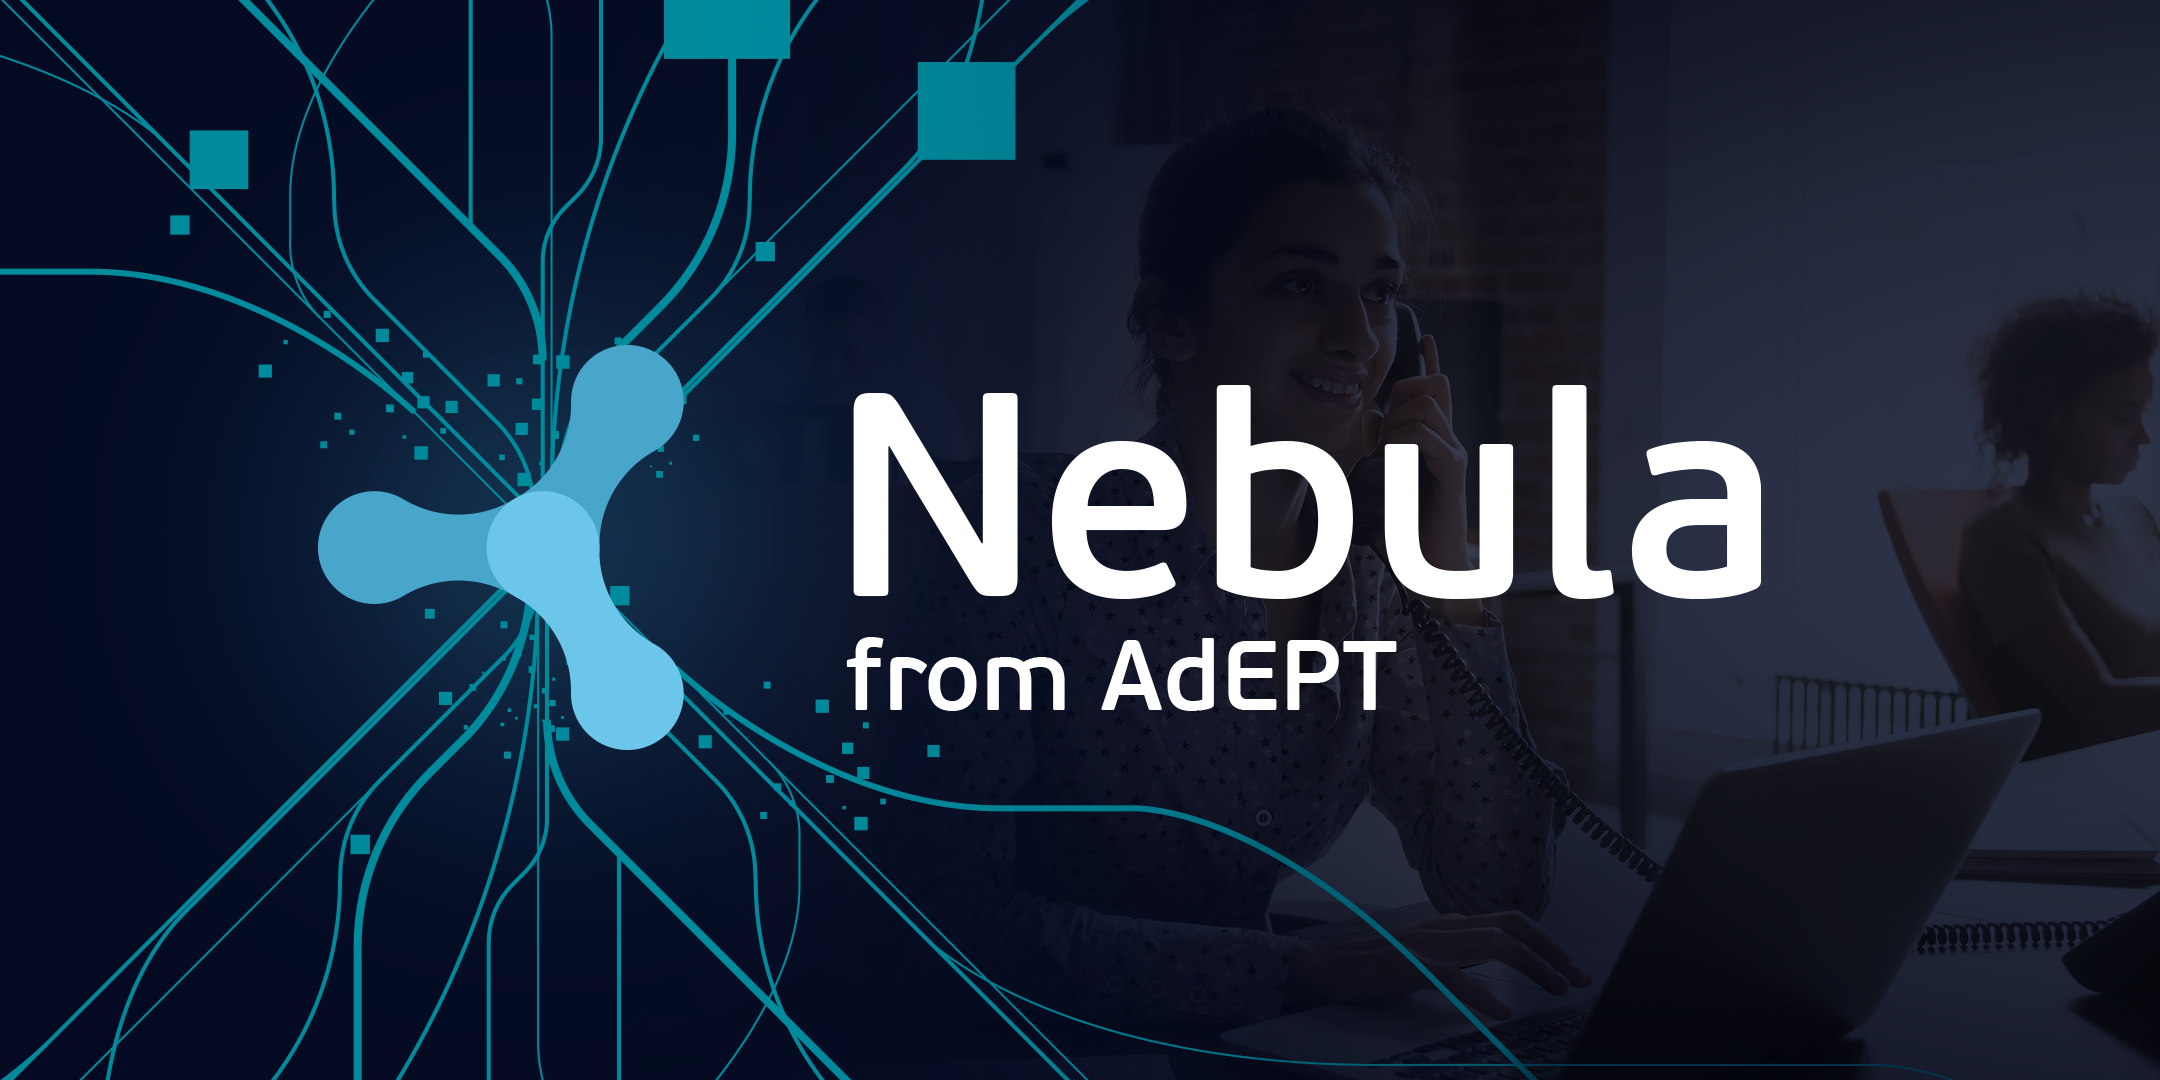 Nebula: the streamlined way to treat your technology headaches